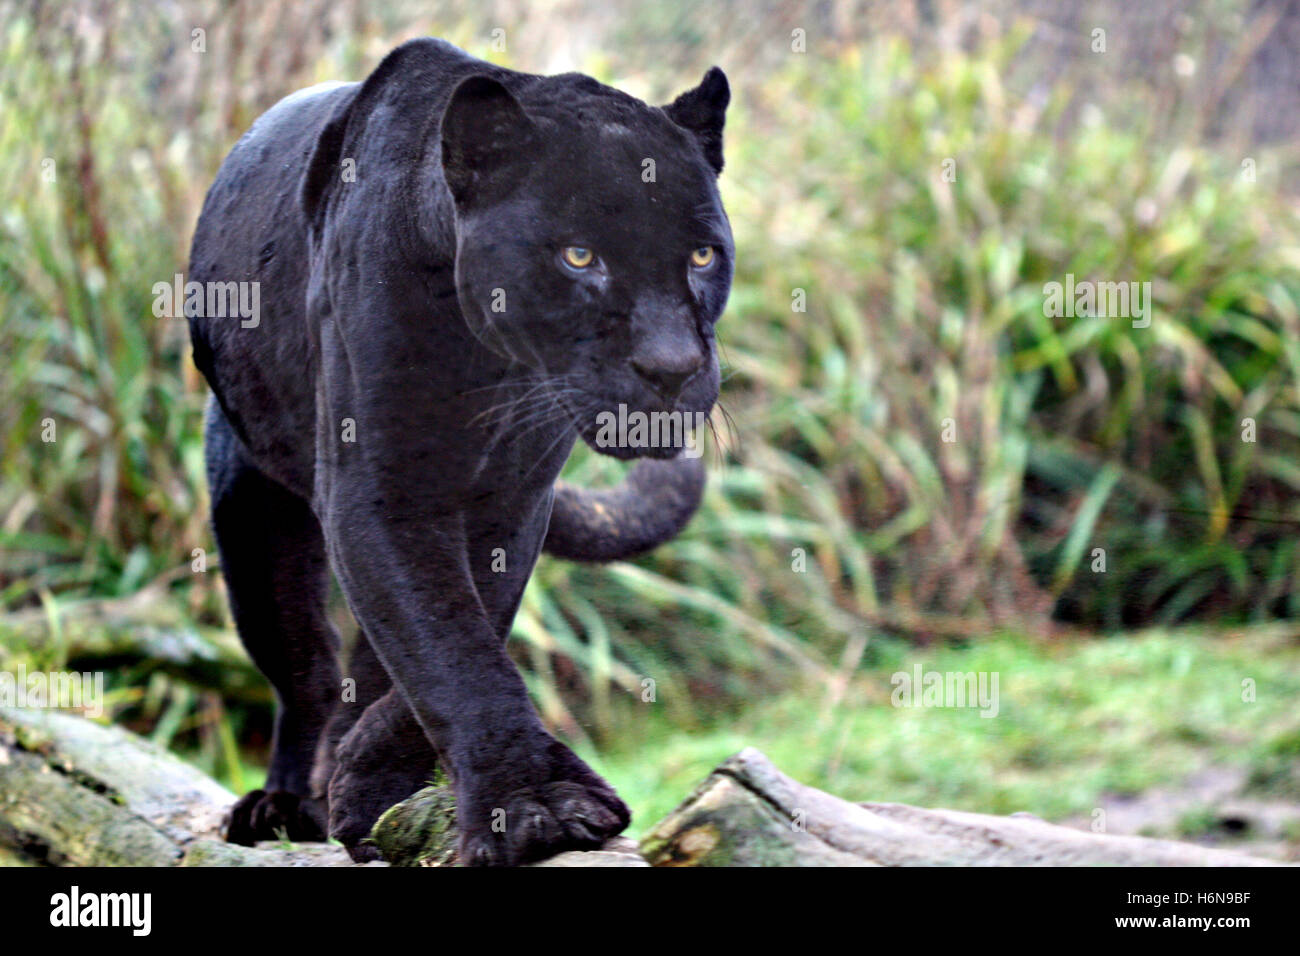 Black Jaguar   Stock Image